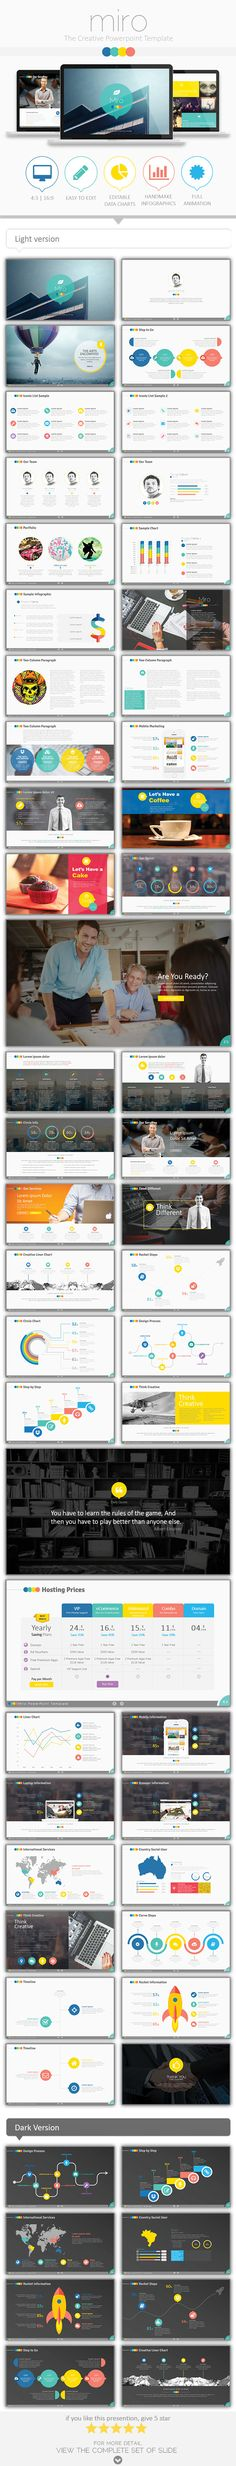 Miro - Creative and Ultimate PowerPoint Template #presentation #design Download: http://graphicriver.net/item/miro-creative-and-ultimate-powerpoint-template/10816220?ref=ksioks